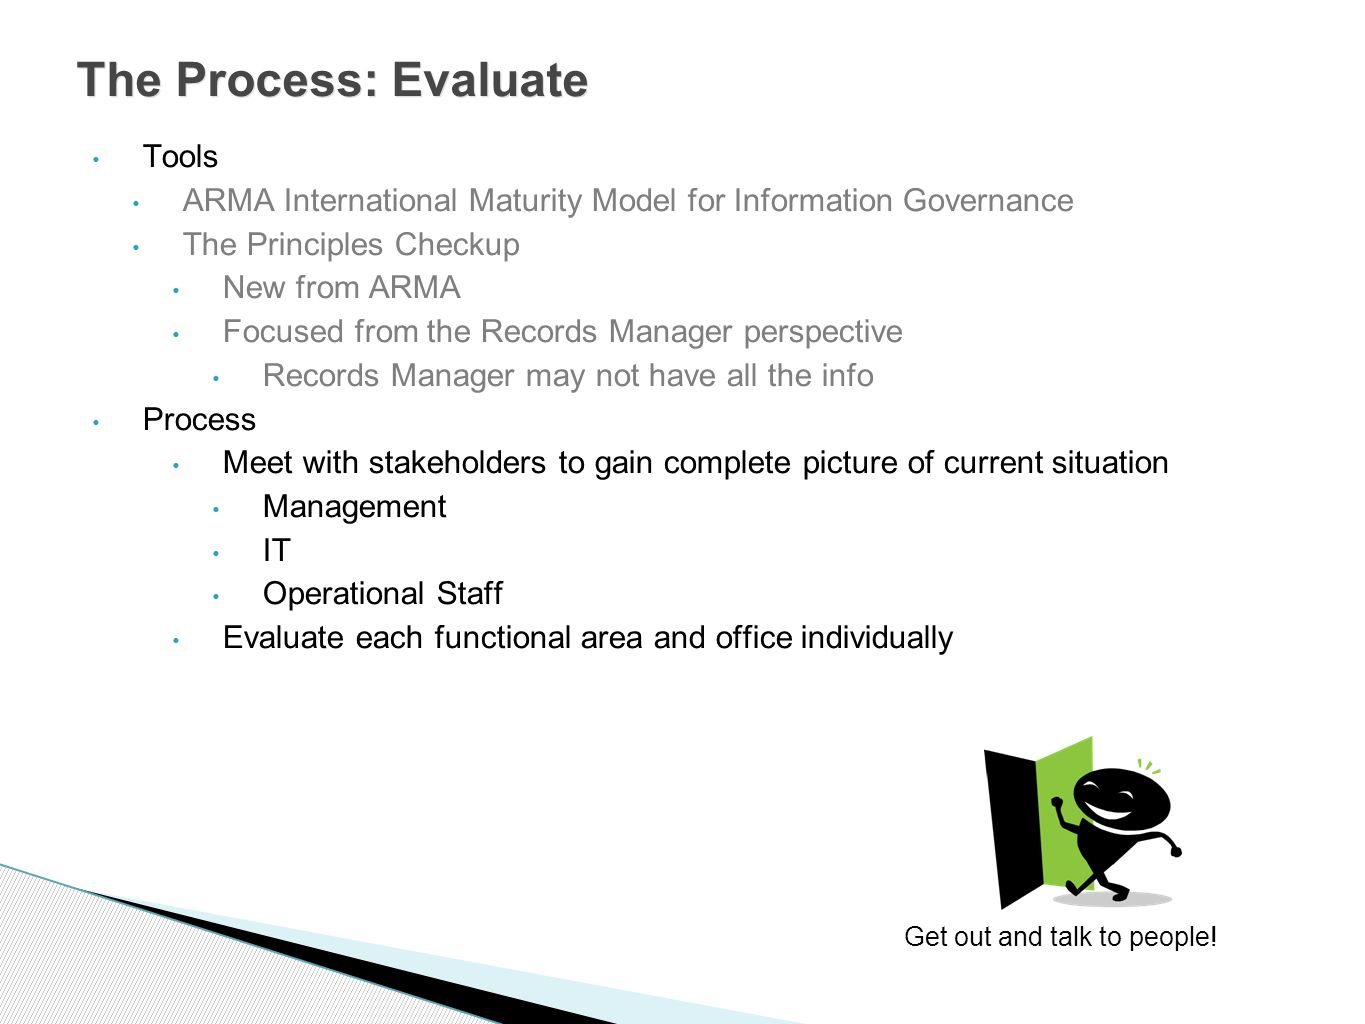 Tools ARMA International Maturity Model for Information Governance The Principles Checkup New from ARMA Focused from the Records Manager perspective Records Manager may not have all the info Process Meet with stakeholders to gain complete picture of current situation Management IT Operational Staff Evaluate each functional area and office individually The Process: Evaluate Get out and talk to people!